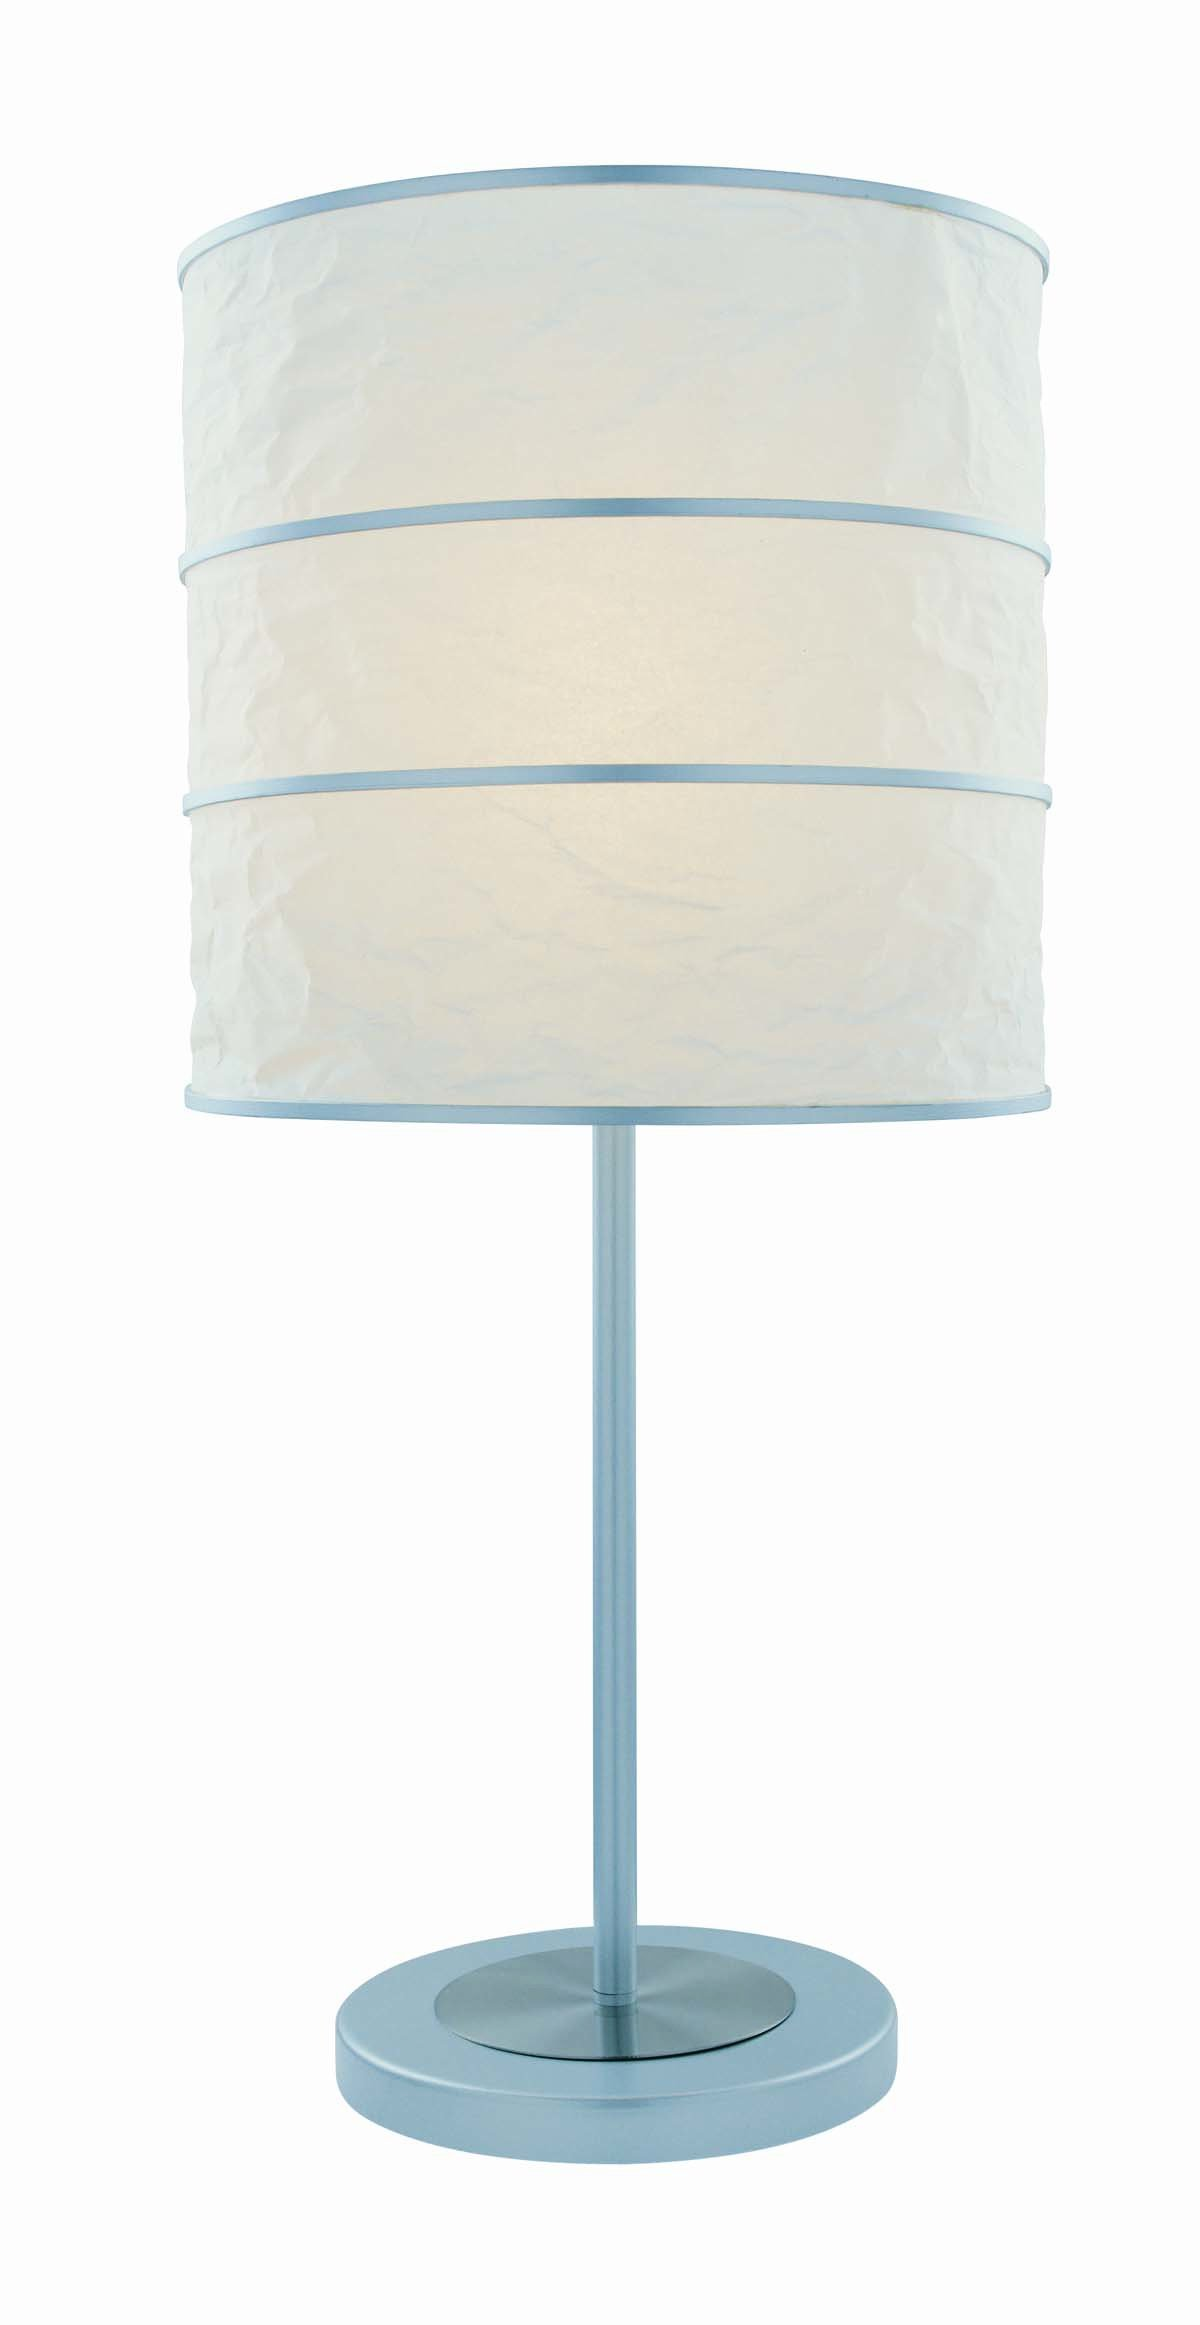 Lite Source Inc LS-21430 Sedlar Table Lamp, Polished Steel And Silver with White Paper Shade, Multicolored